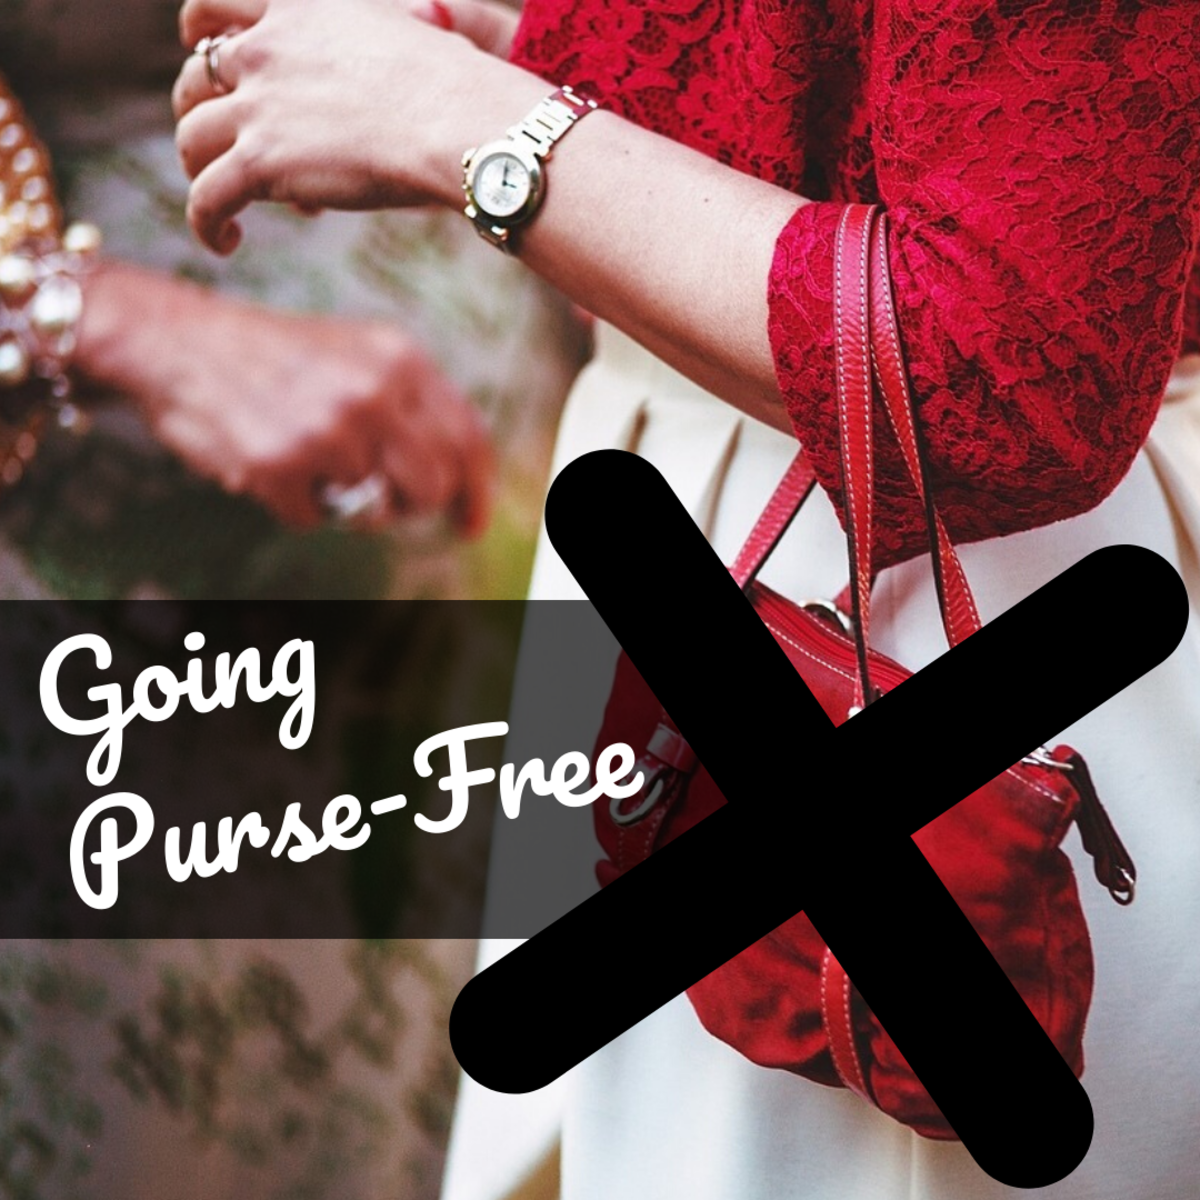 Do you really need everything that's in your purse? Consider going purse-free!